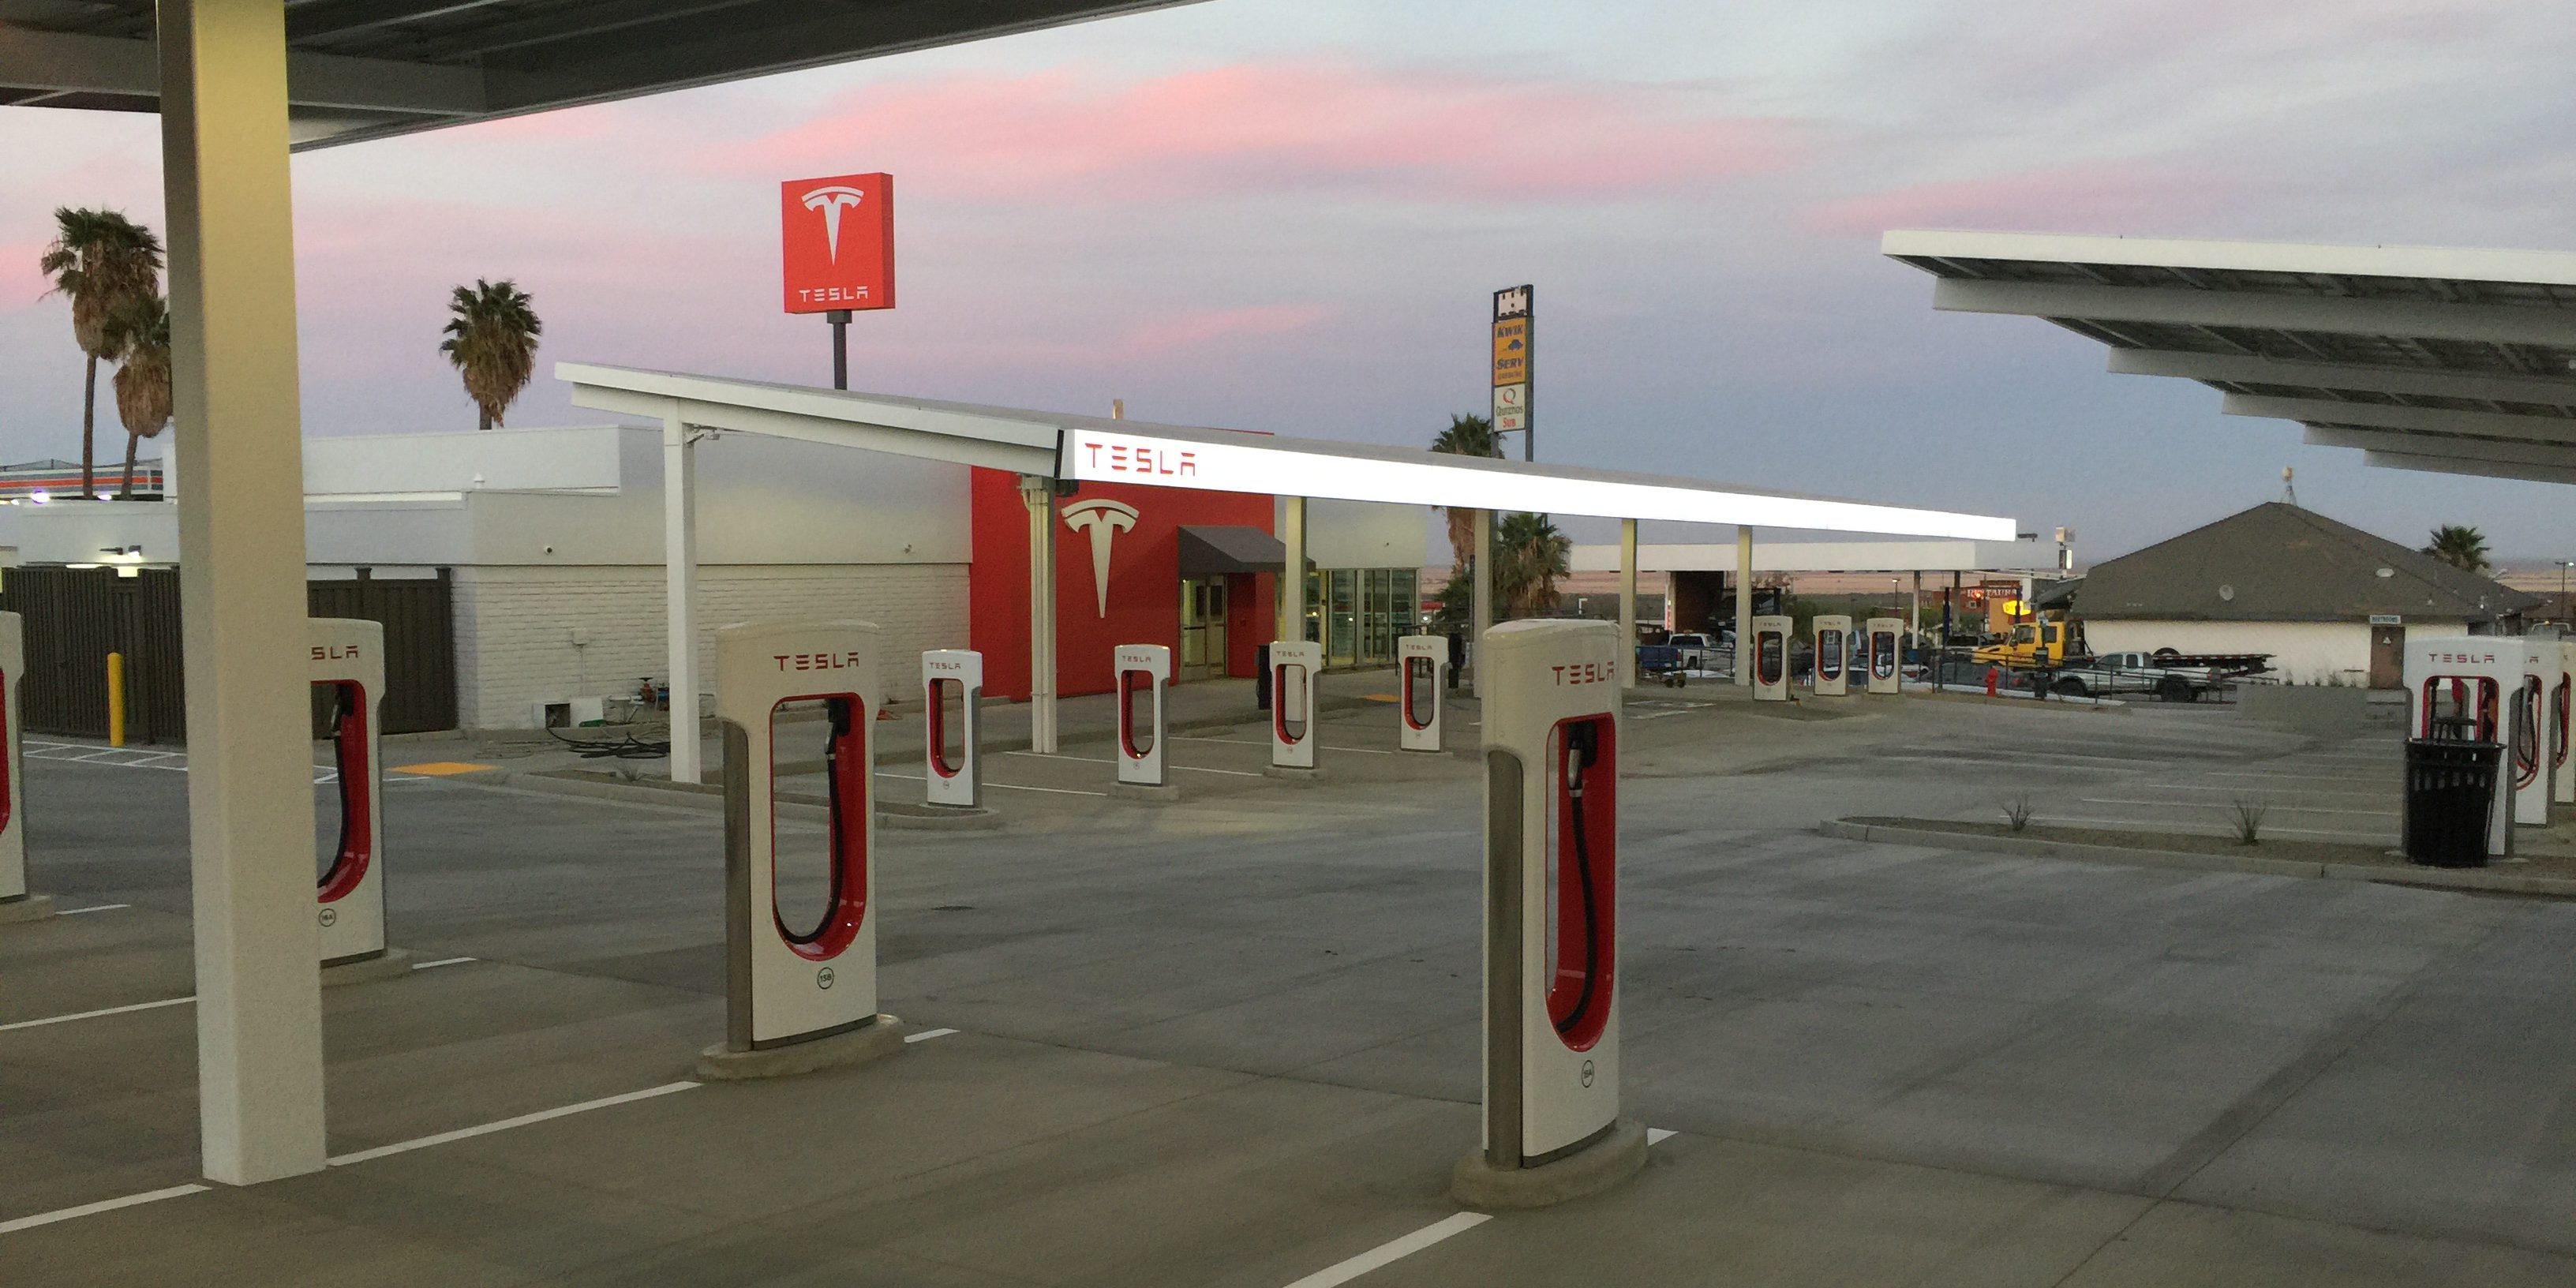 Tesla is about to bring online its biggest Supercharger stations in the US – first look at new lounge